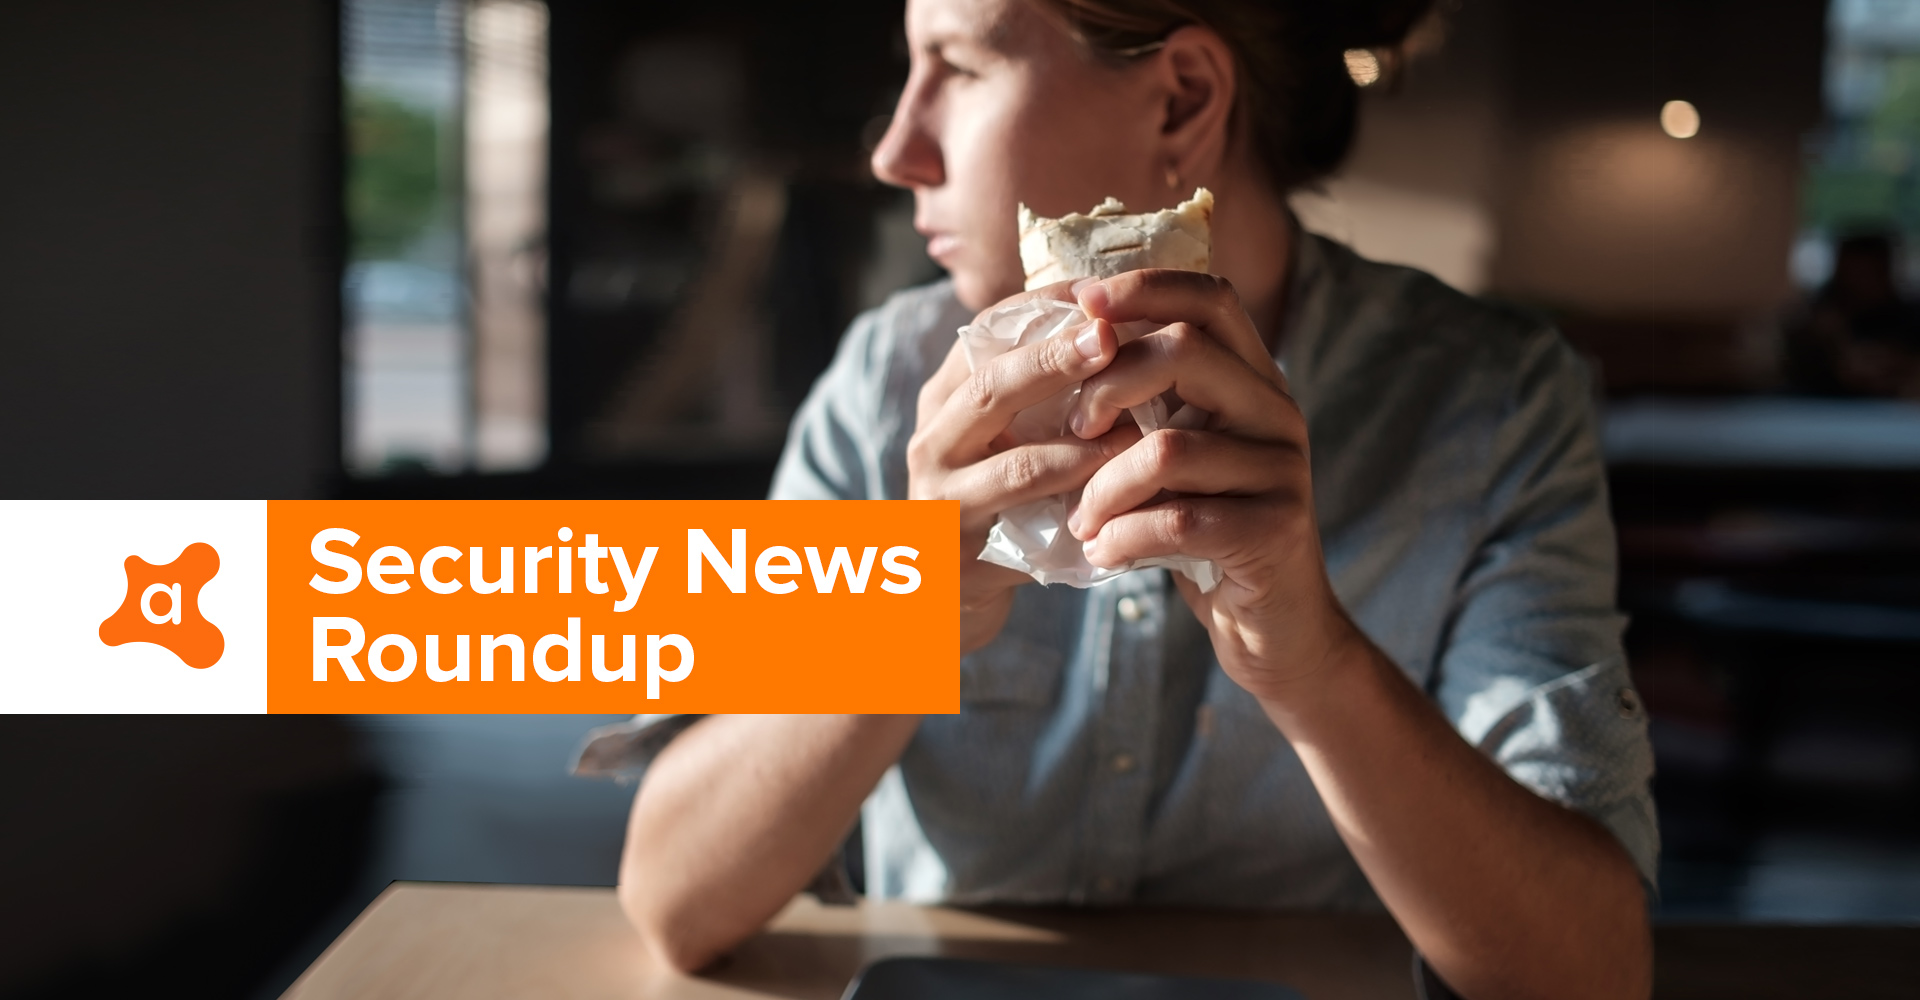 Chipotle Marketing Emails Hijacked to Spread Malware | Avast